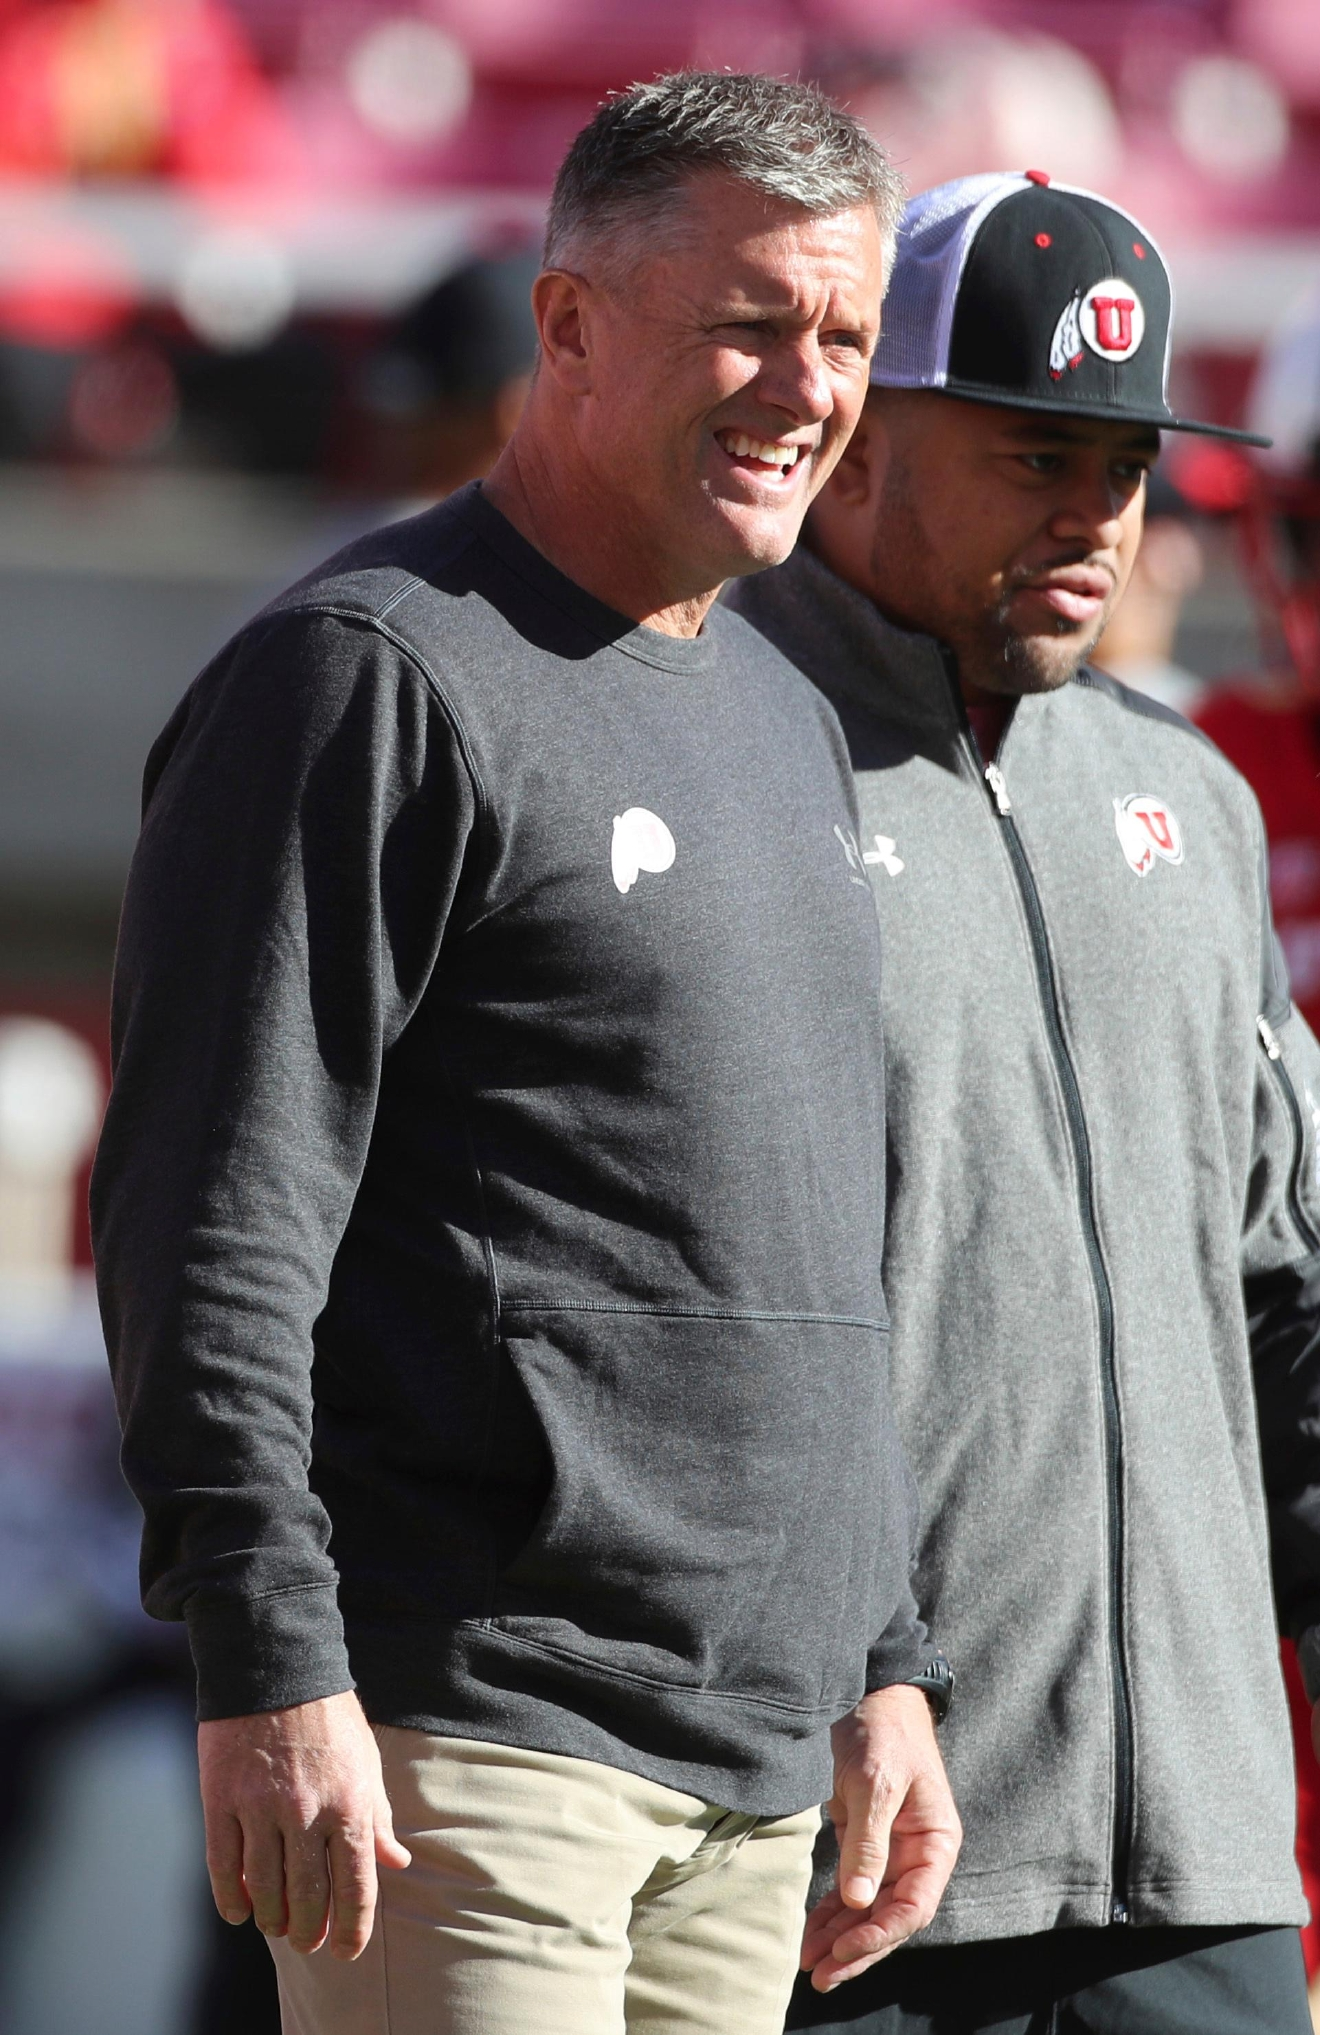 Utah head coach Kyle Whittingham watches his players warm up before an NCAA college football game against Oregon, Saturday, Nov. 19, 2016, in Salt Lake City. (AP Photo/George Frey)